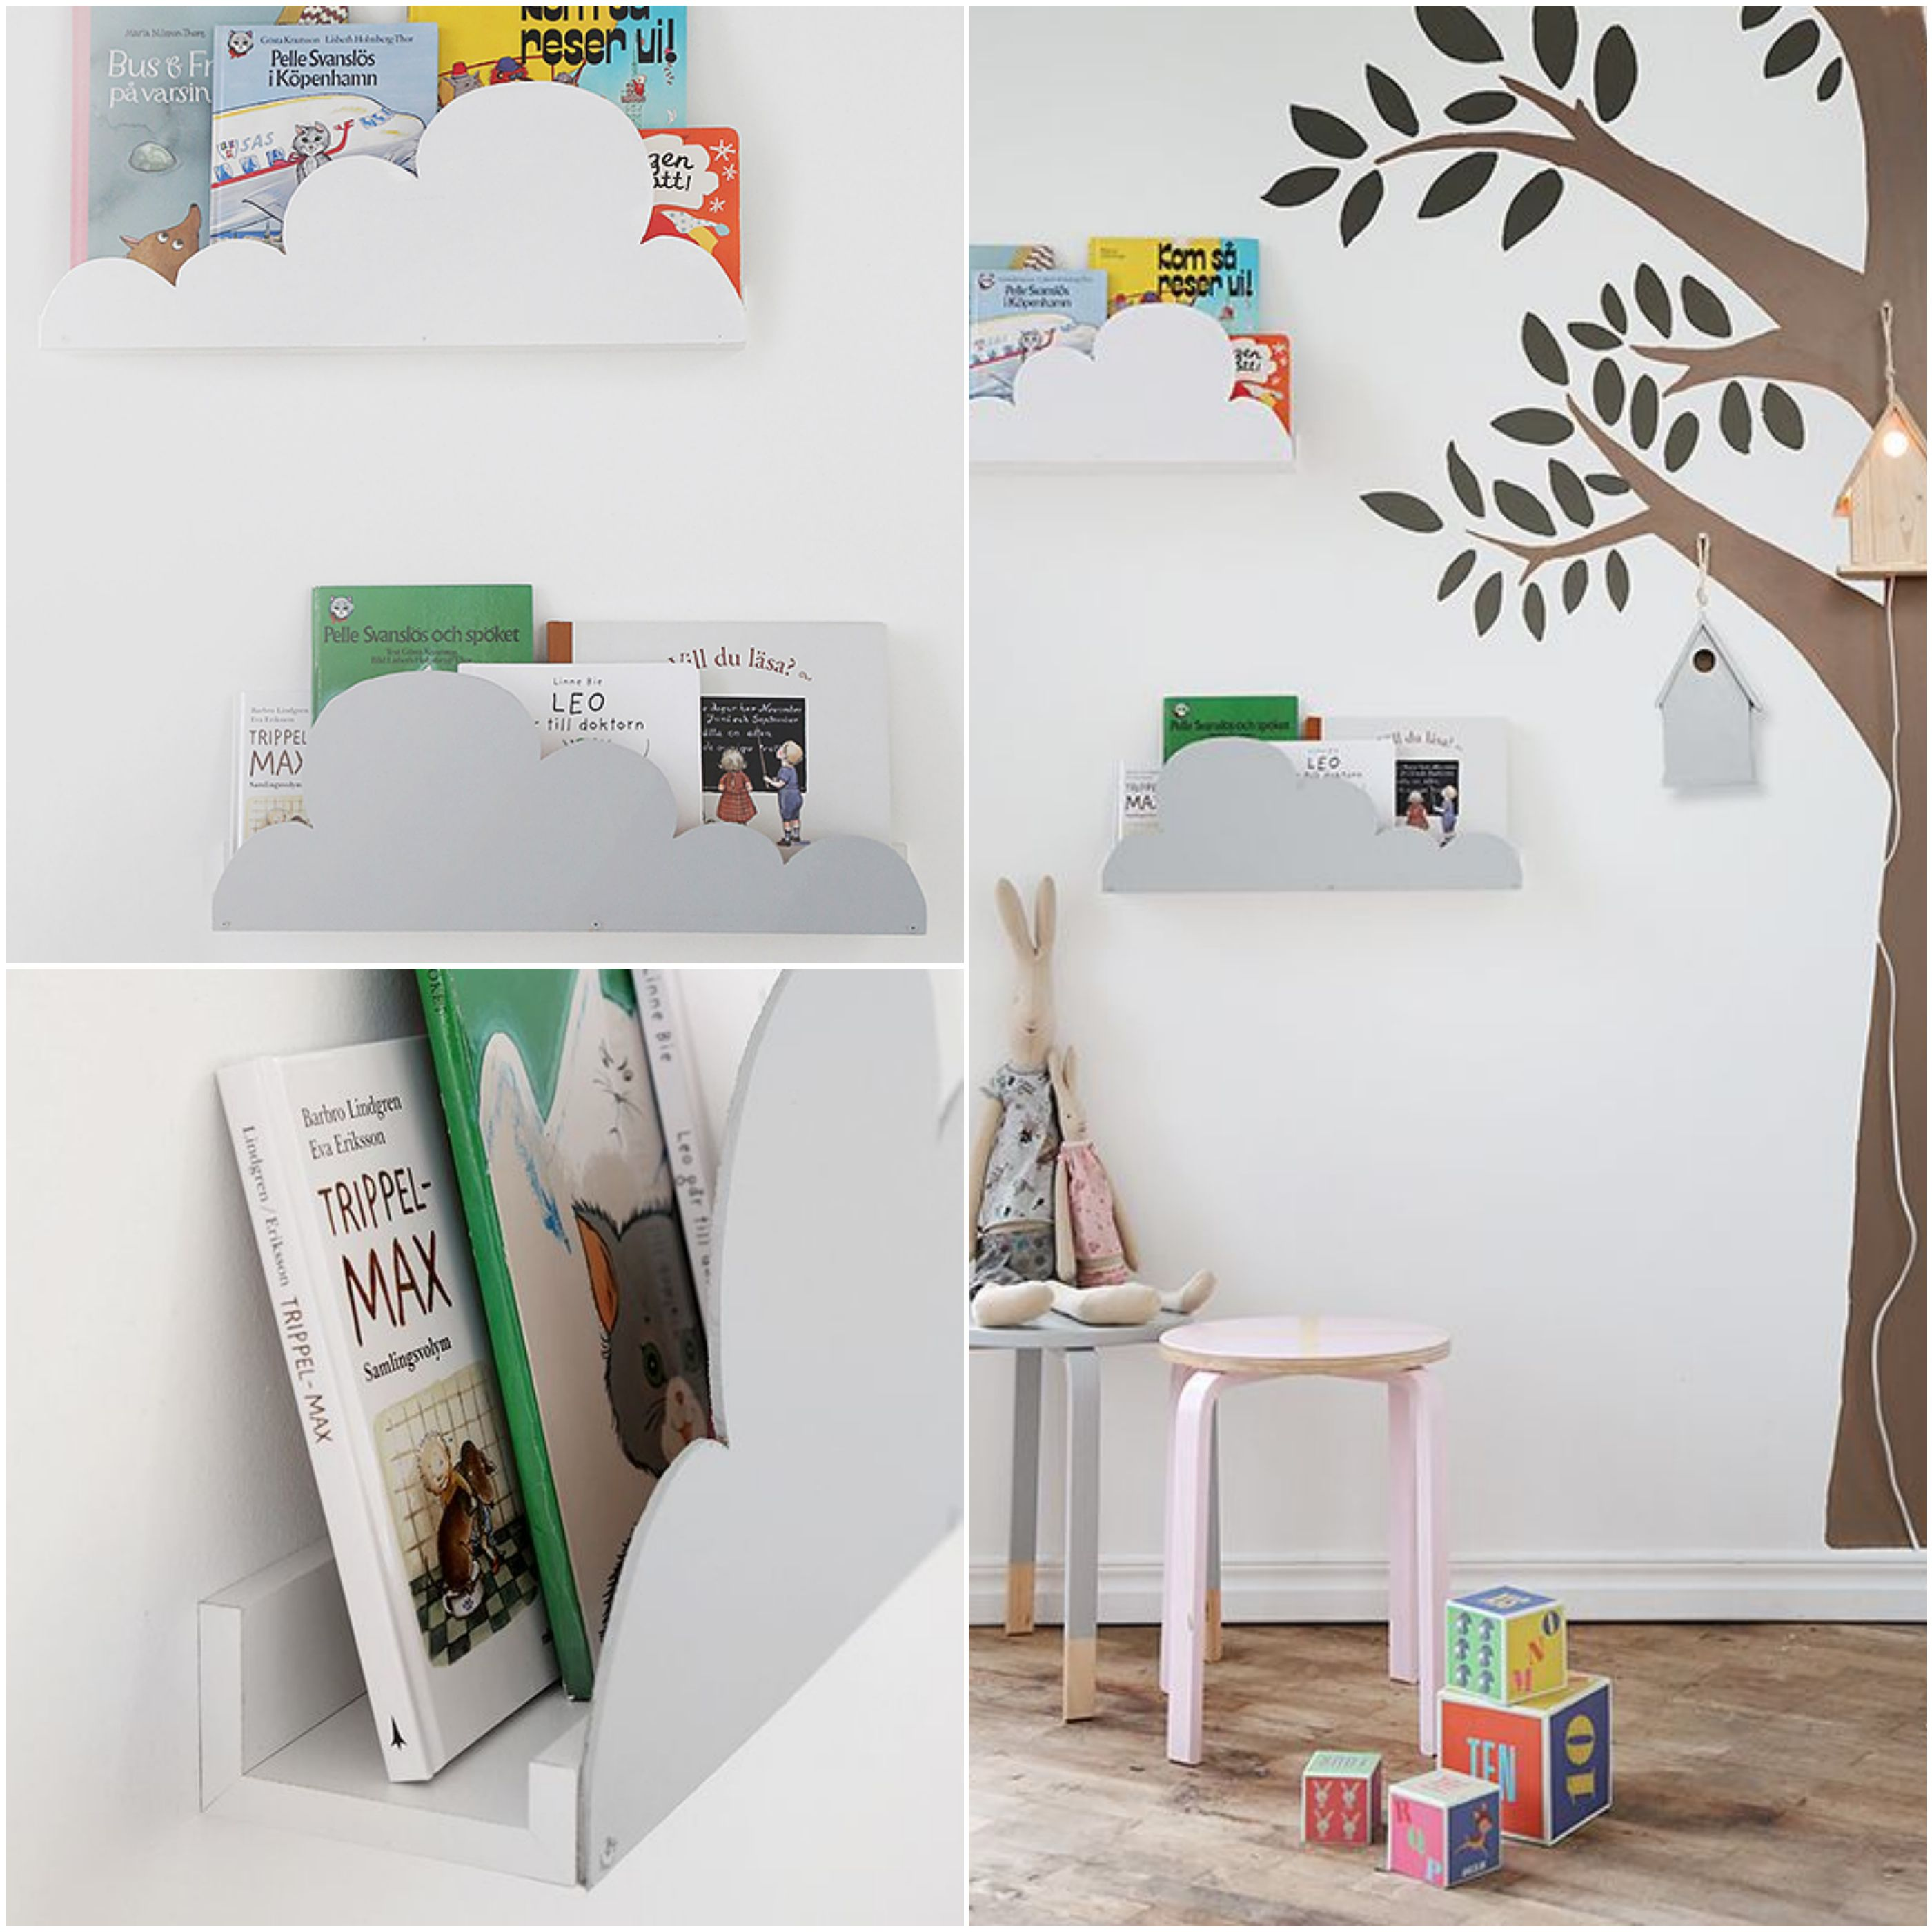 mommo design: 8 LITTLE IKEA HACKS - Ikea Ribba shelf ...